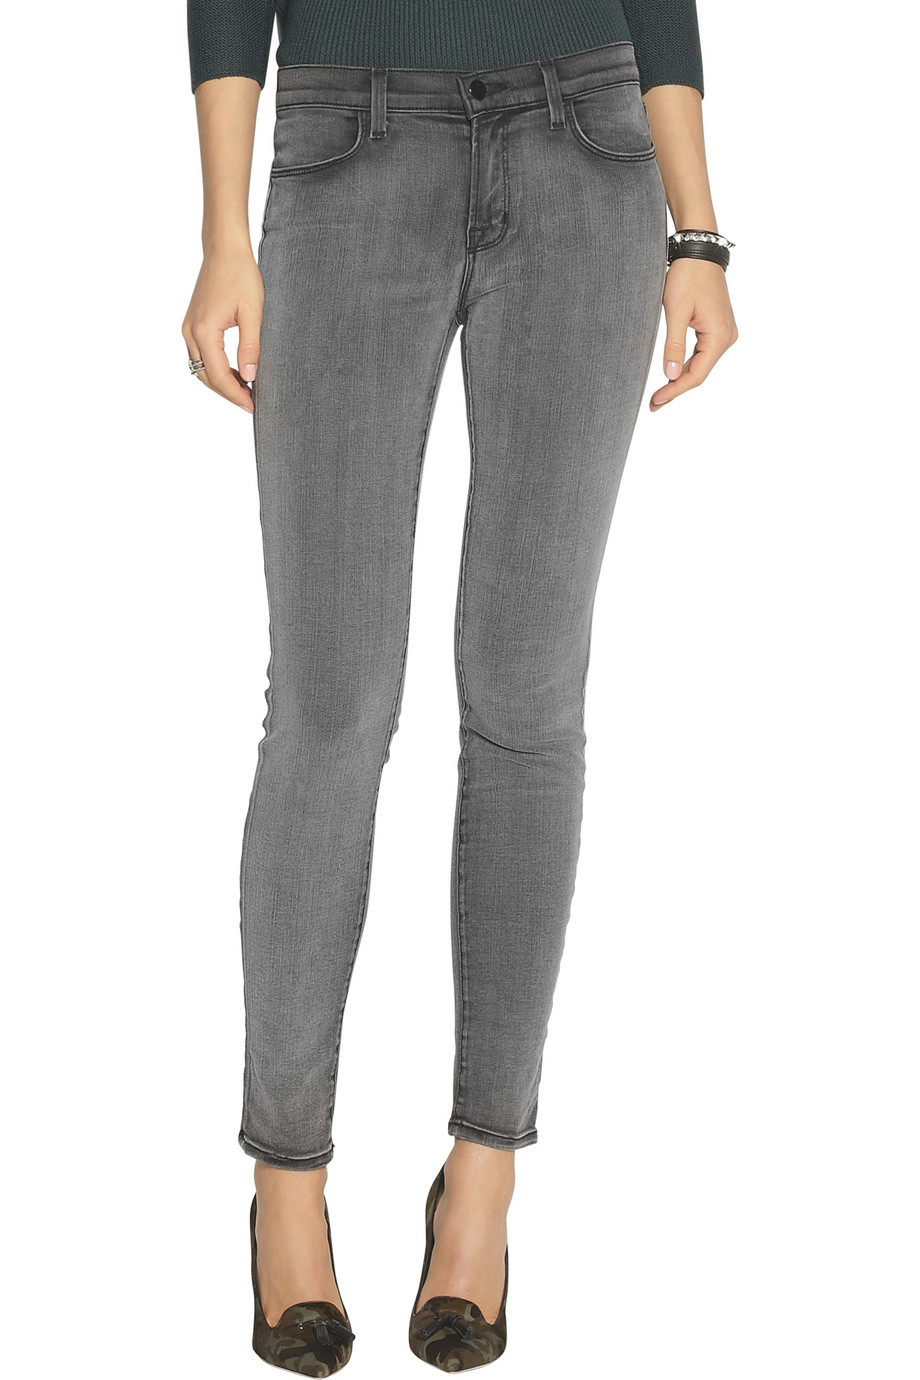 j brand 620 photo ready mid rise skinny jeans in gray lyst. Black Bedroom Furniture Sets. Home Design Ideas